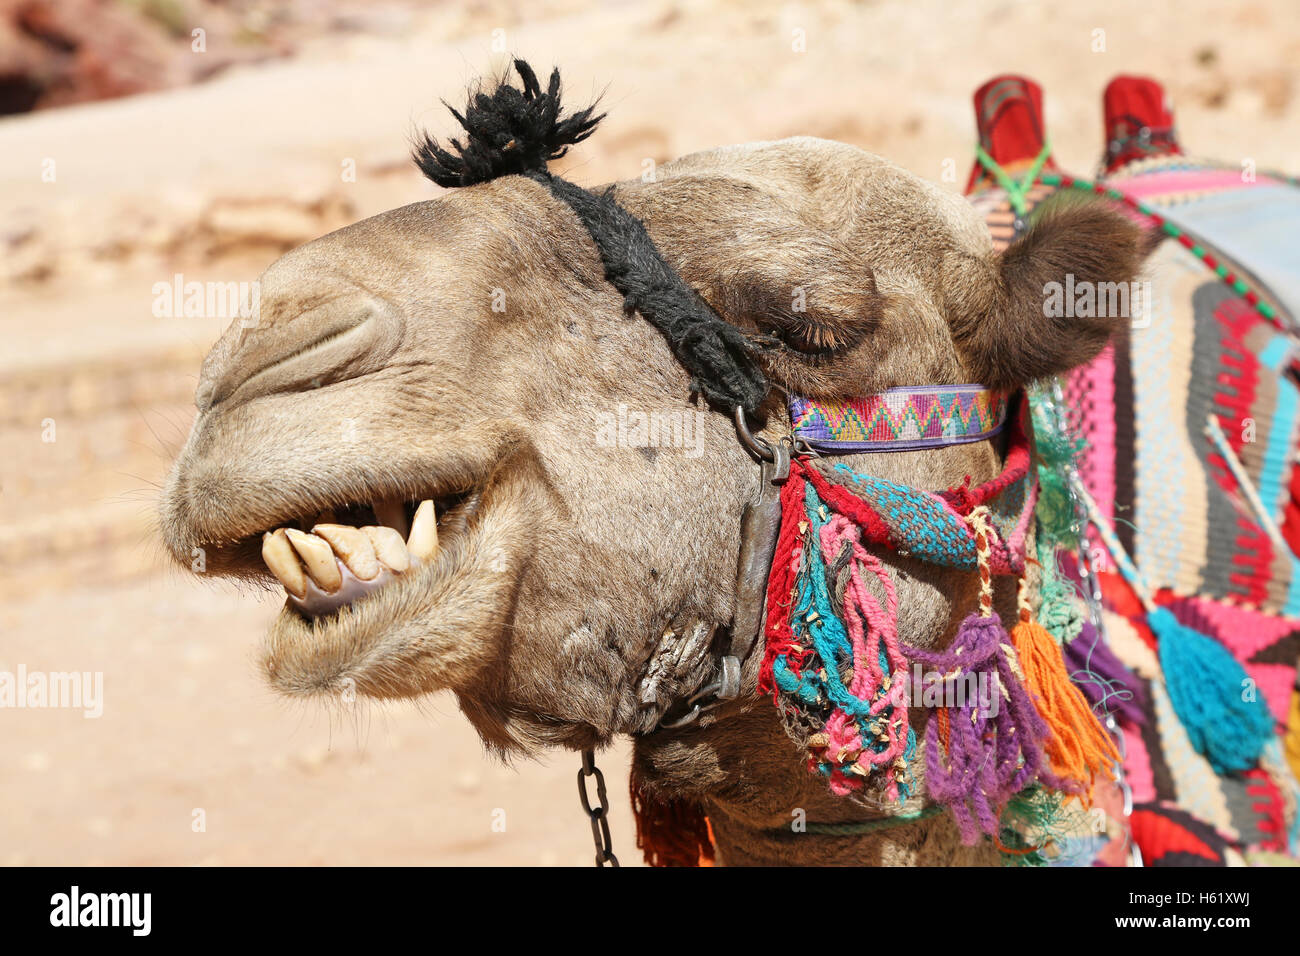 Camel in the rock city of Petra, Jordan - Stock Image